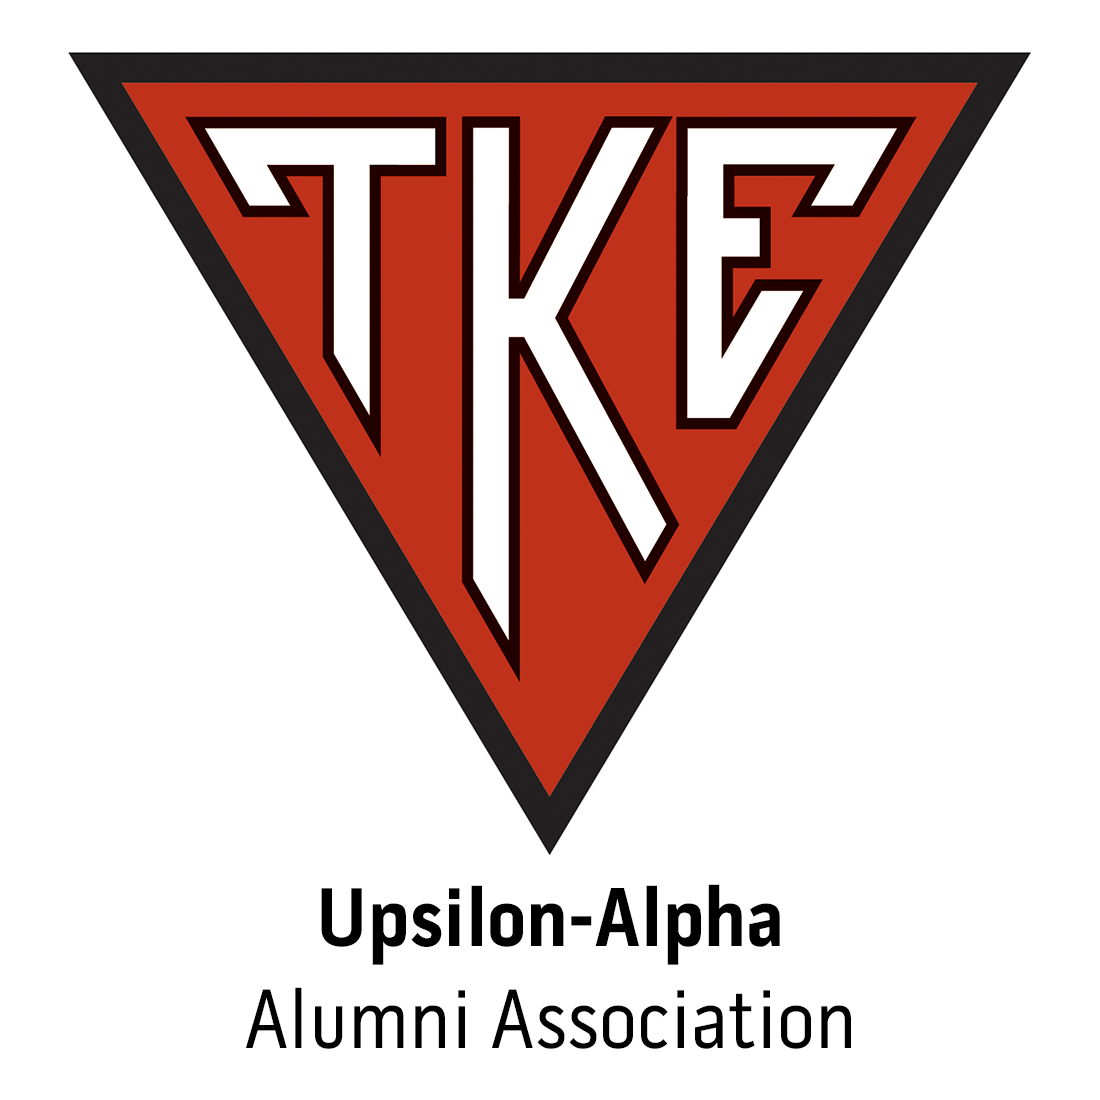 Upsilon-Alpha Alumni Association for Spring Hill College